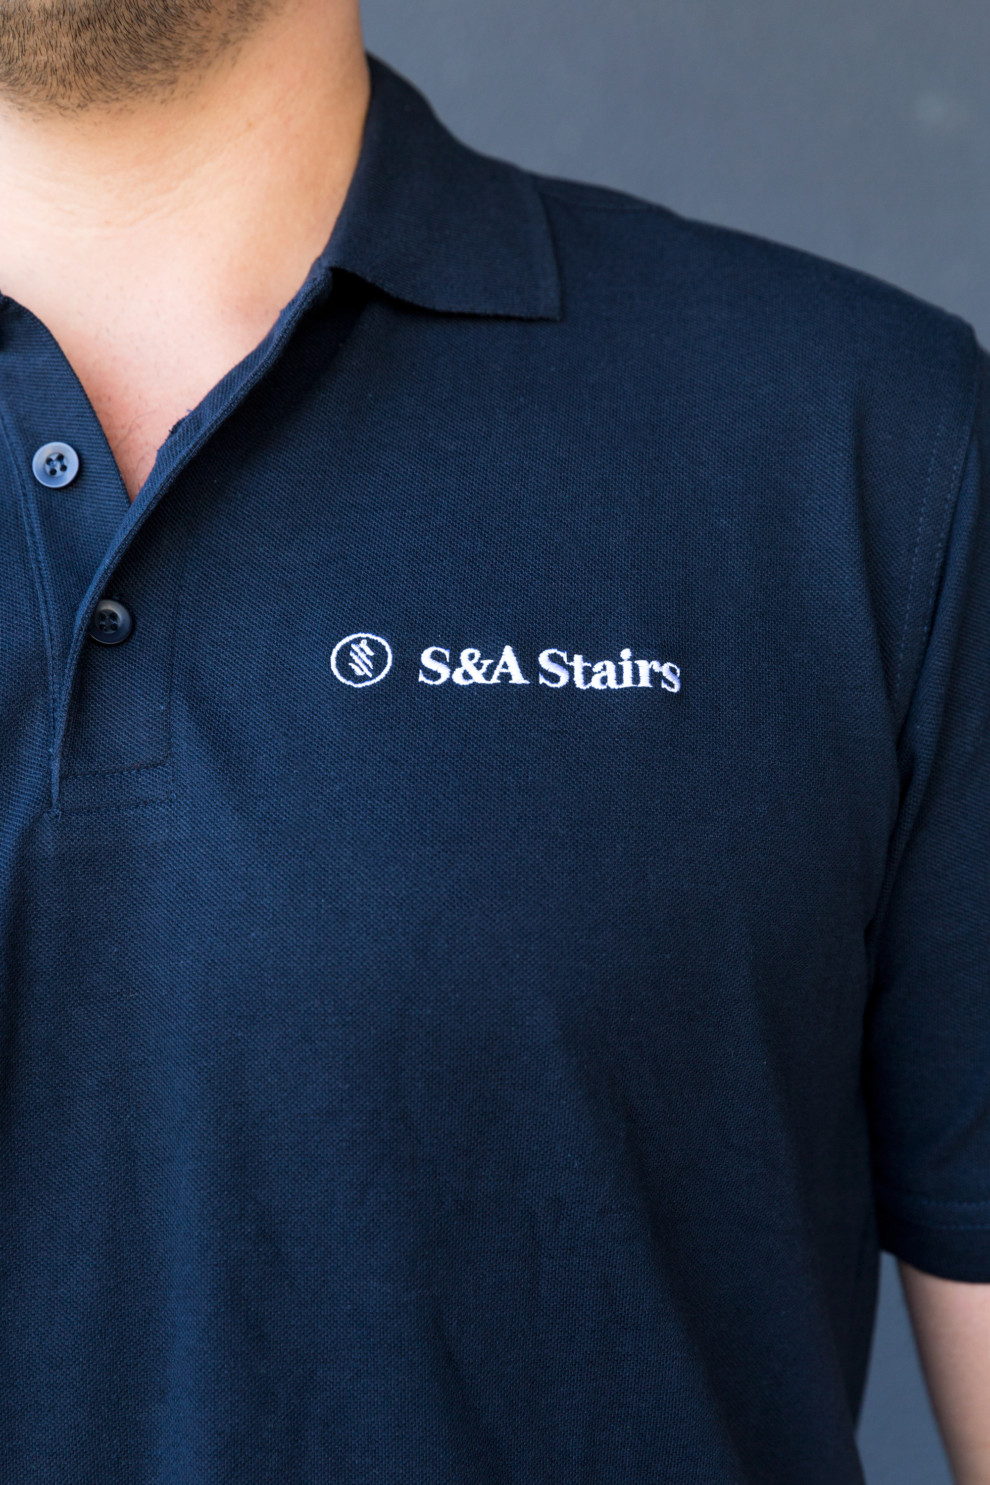 S&A Stairs - Uniform